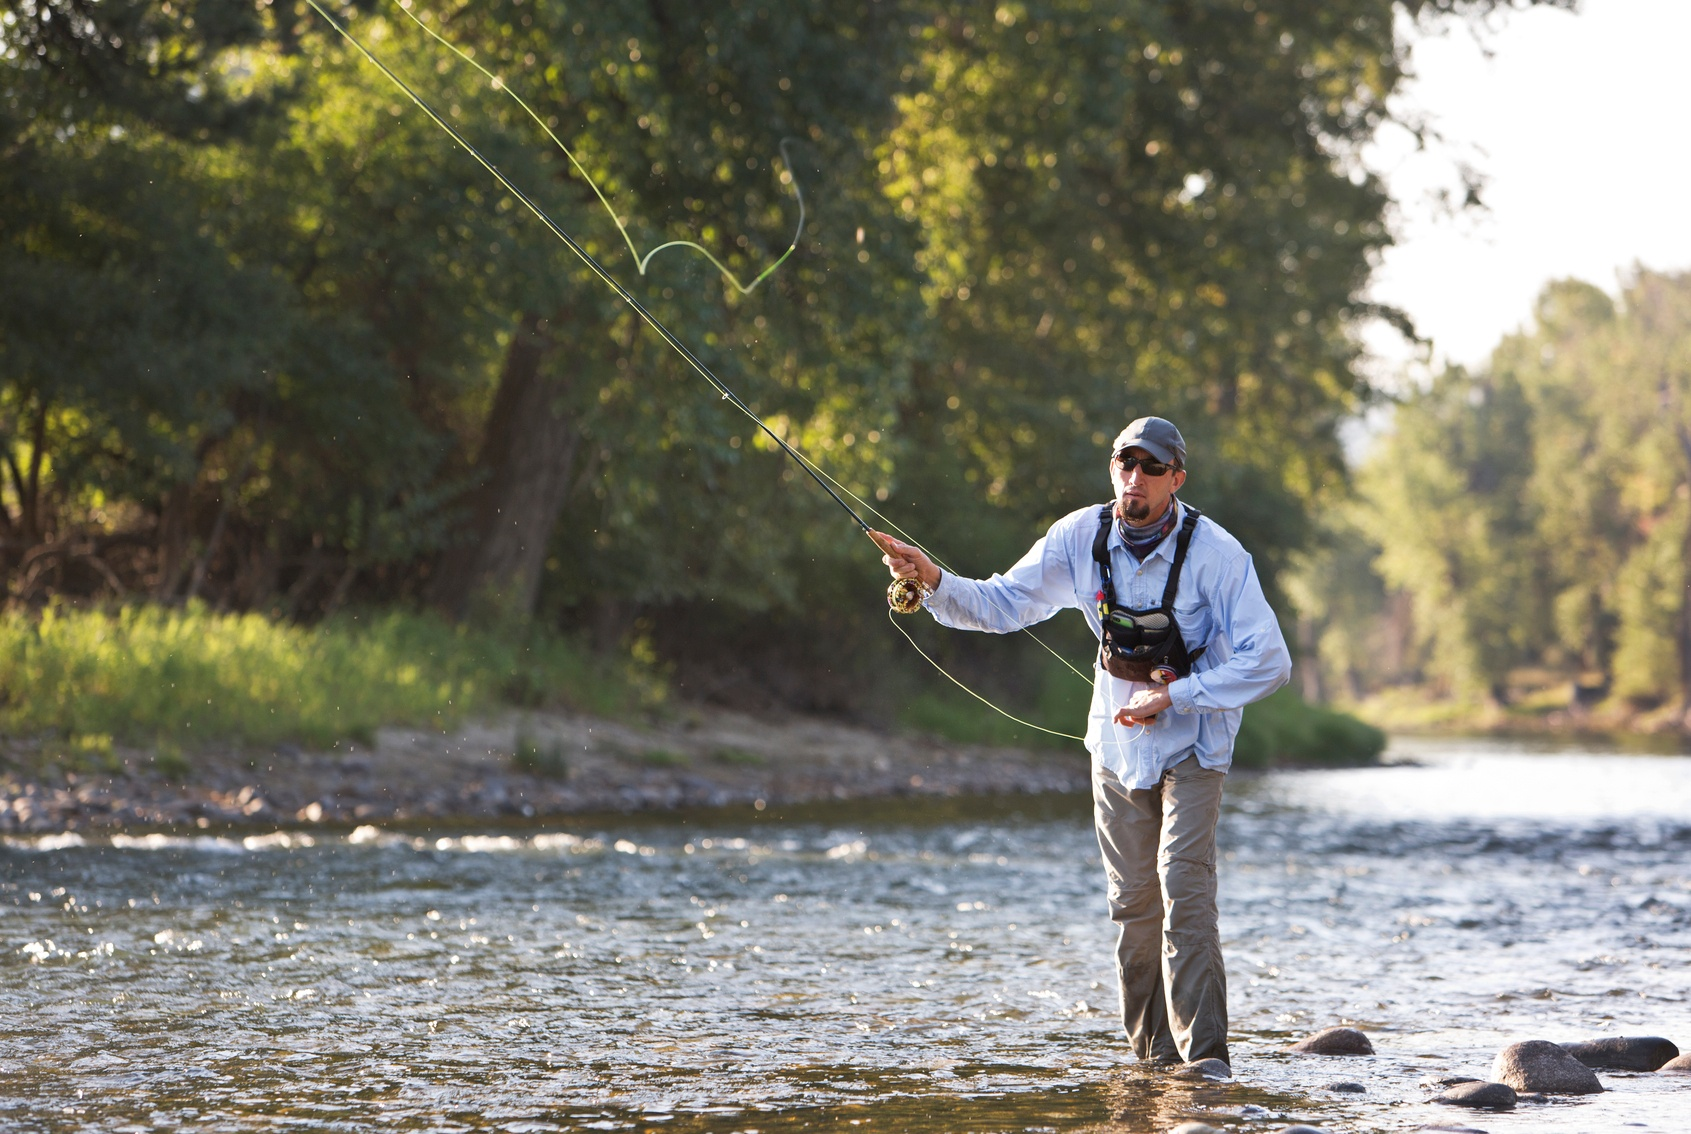 Fly fishing in Bozeman